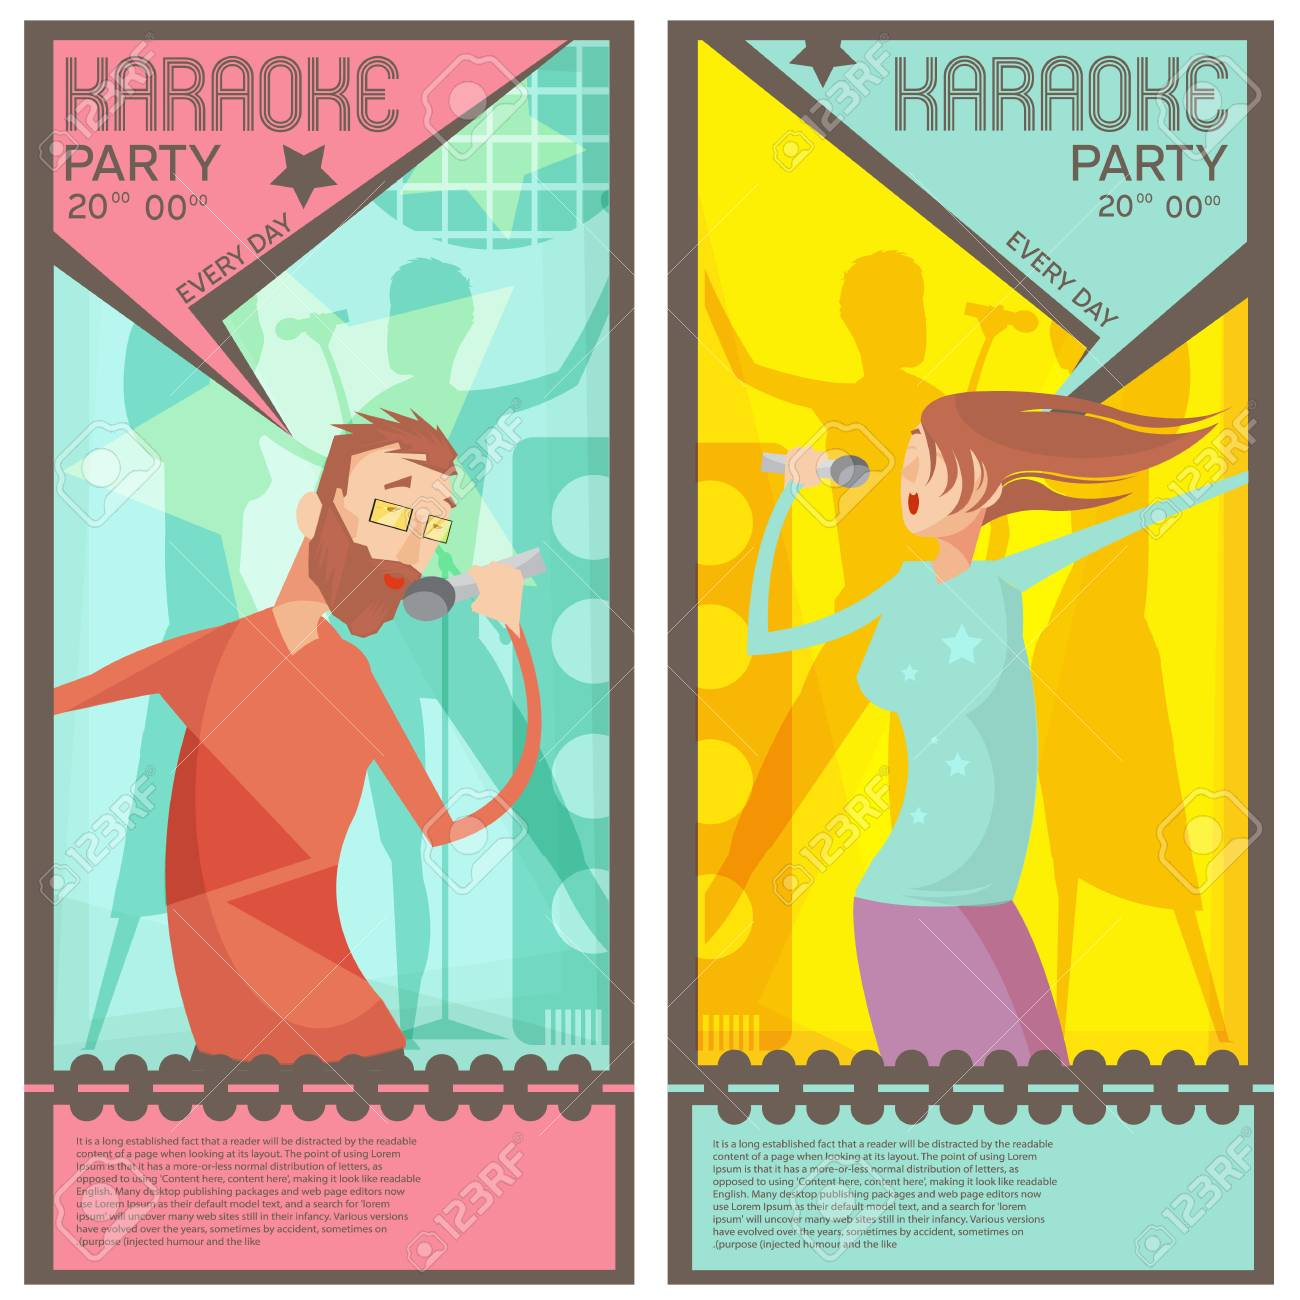 Karaoke Party Ticket Templates With Singing Man And Woman Flat ...